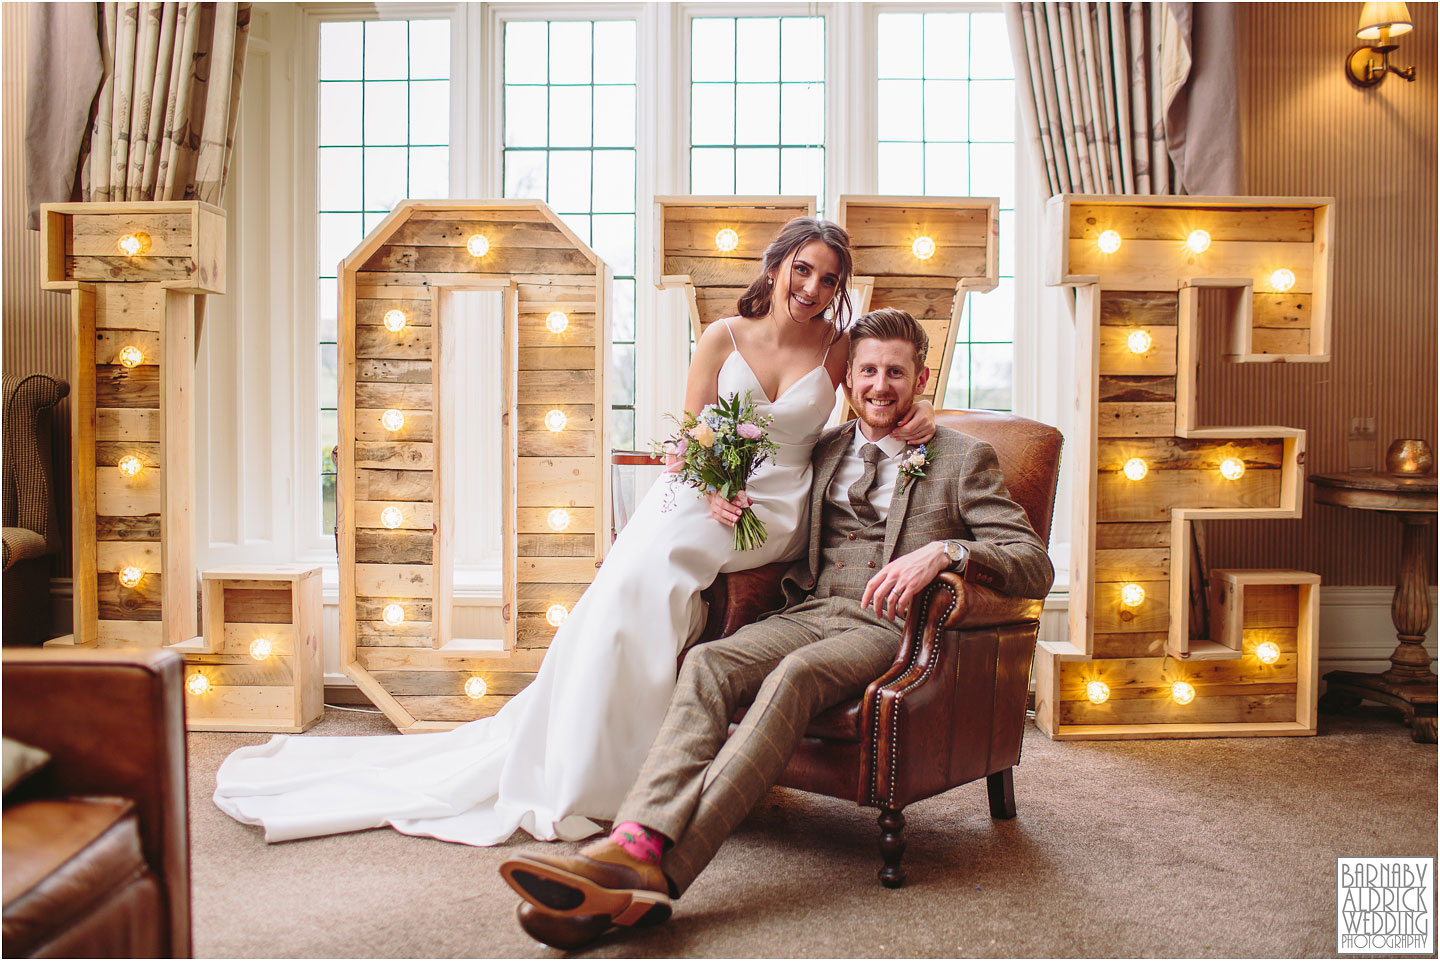 Indoor rainy wedding photos at Falcon Manor in Settle in the Yorkshire Dales